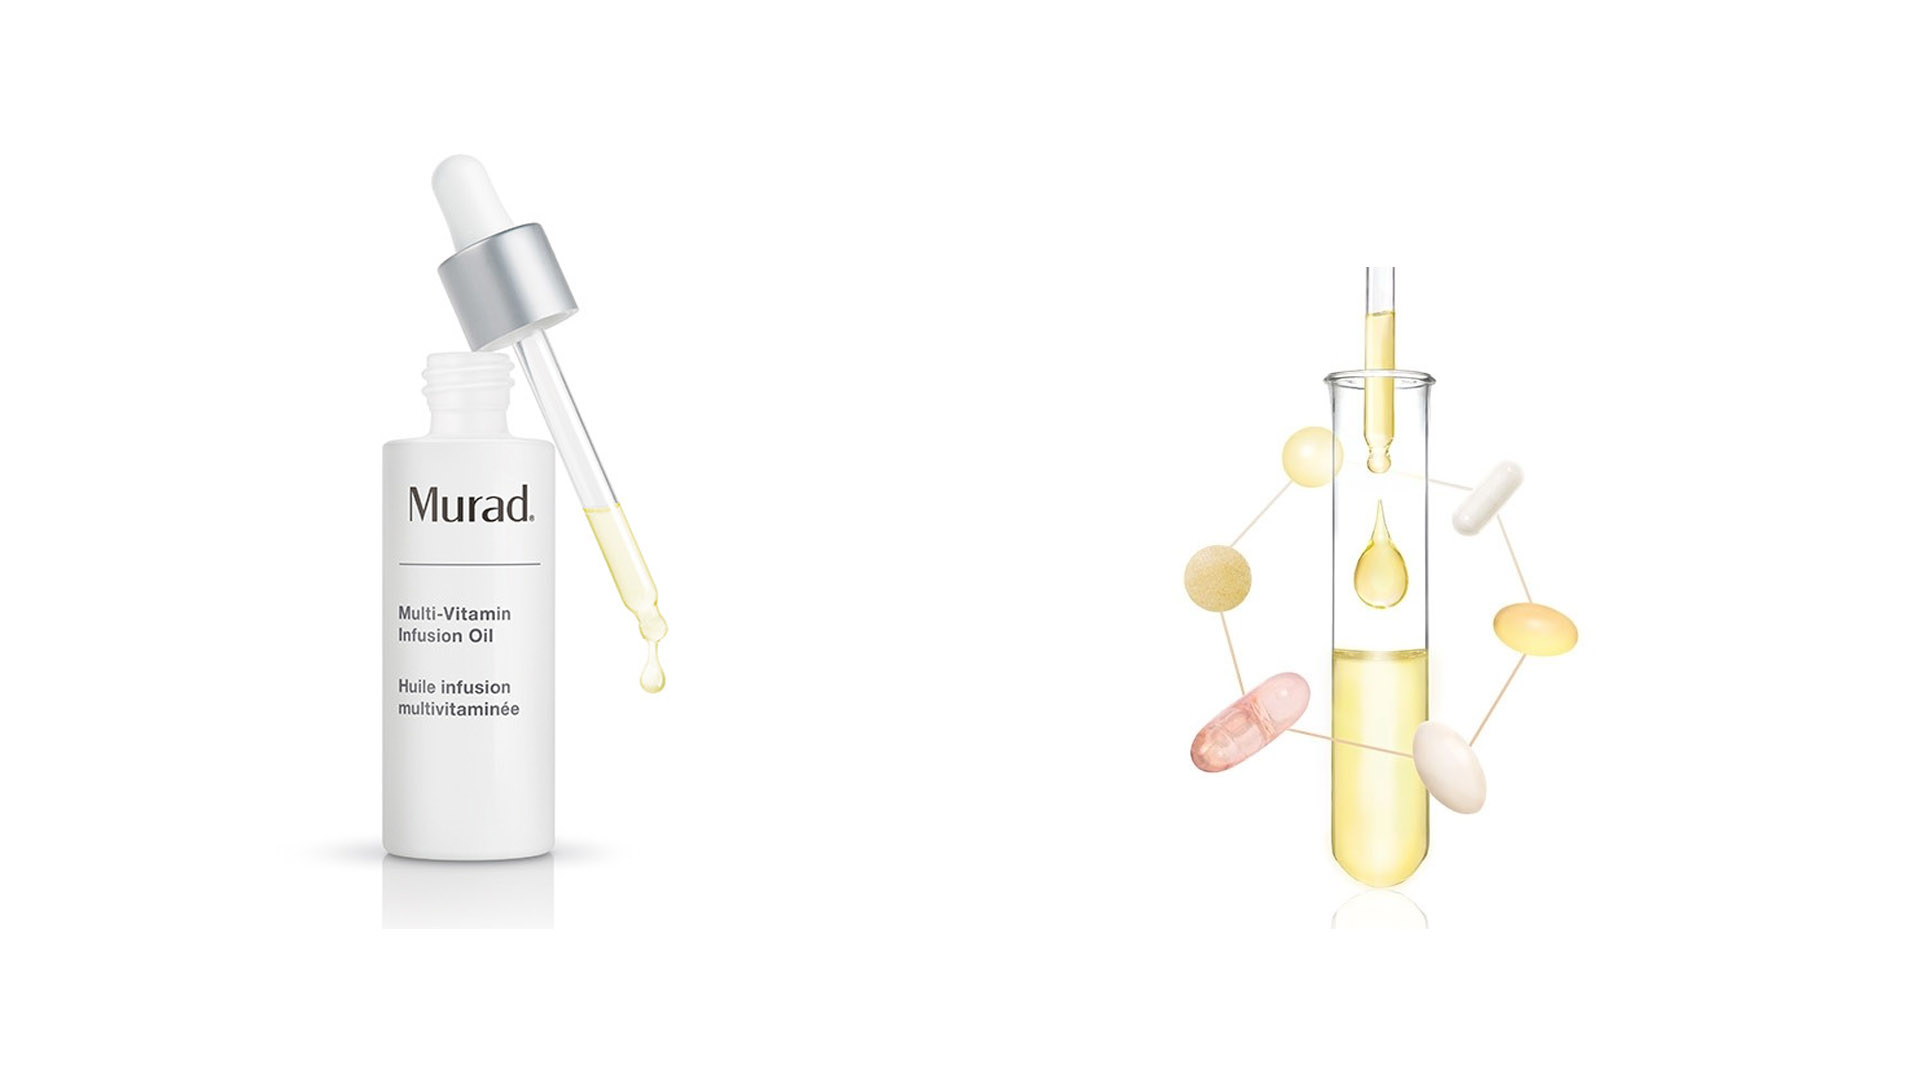 Multi Vitamin Infusion Oil Is One Of 4 Life Changing Skin Care Products